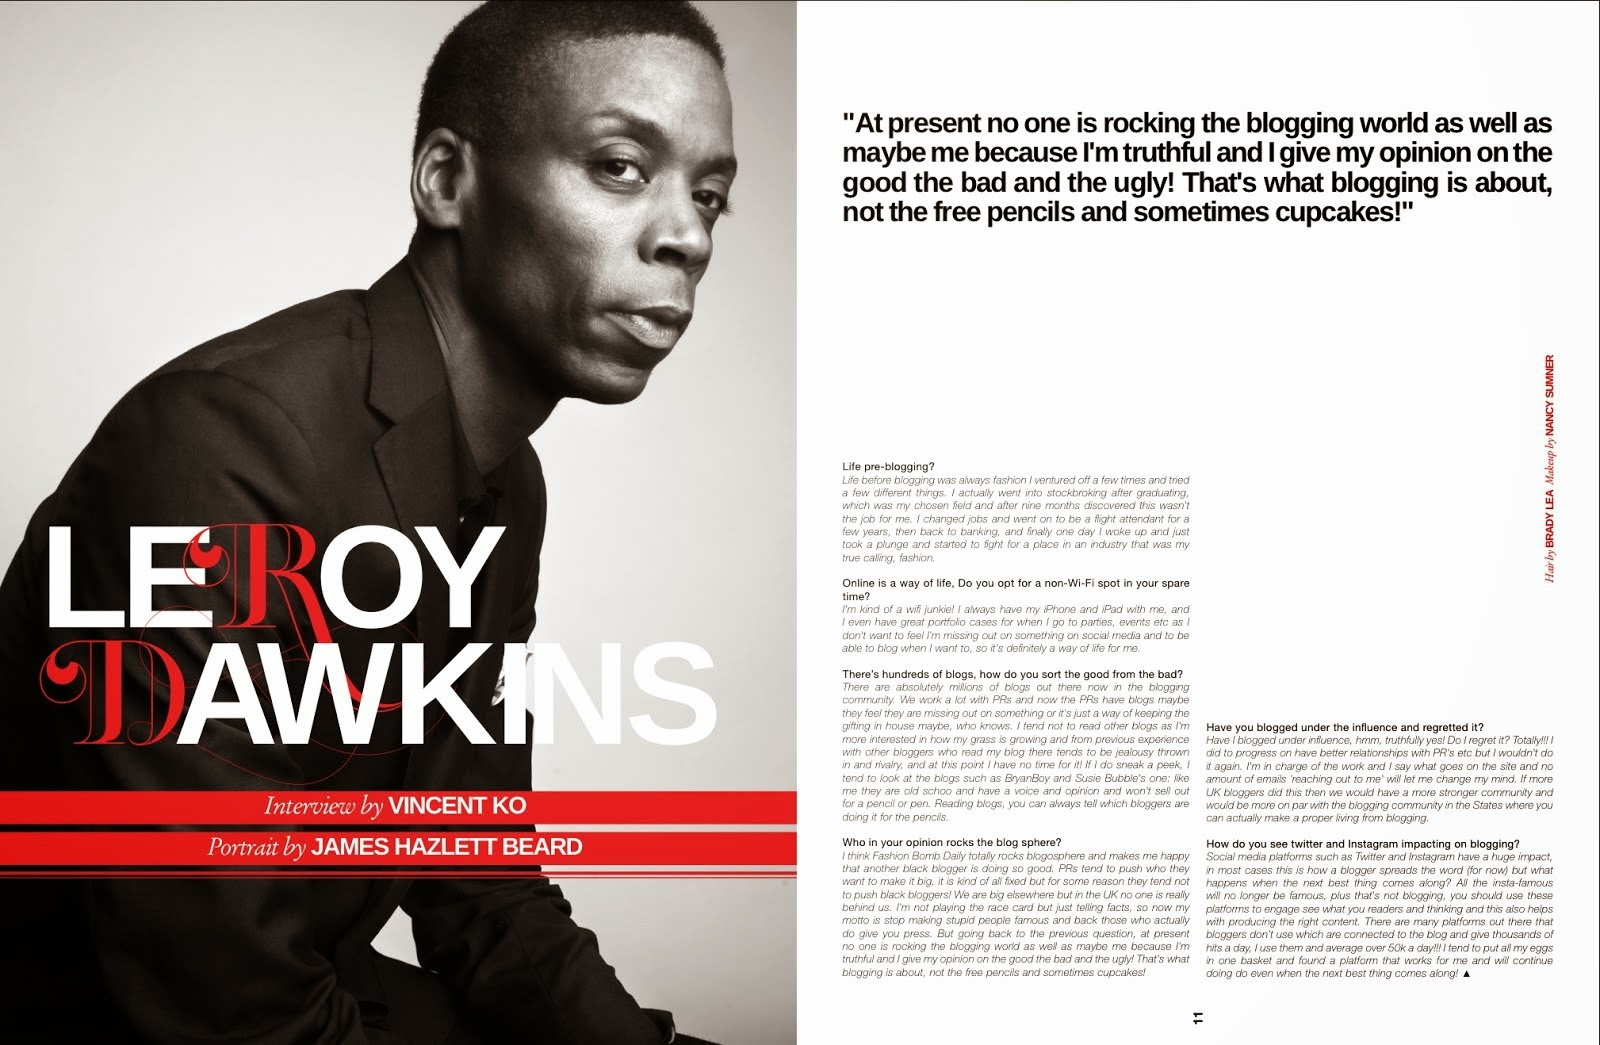 MY DOUBLE PAGE SPREAD AND EXCLUSIVE INTERVIEW WITH HOMME STYLE MAGAZINE